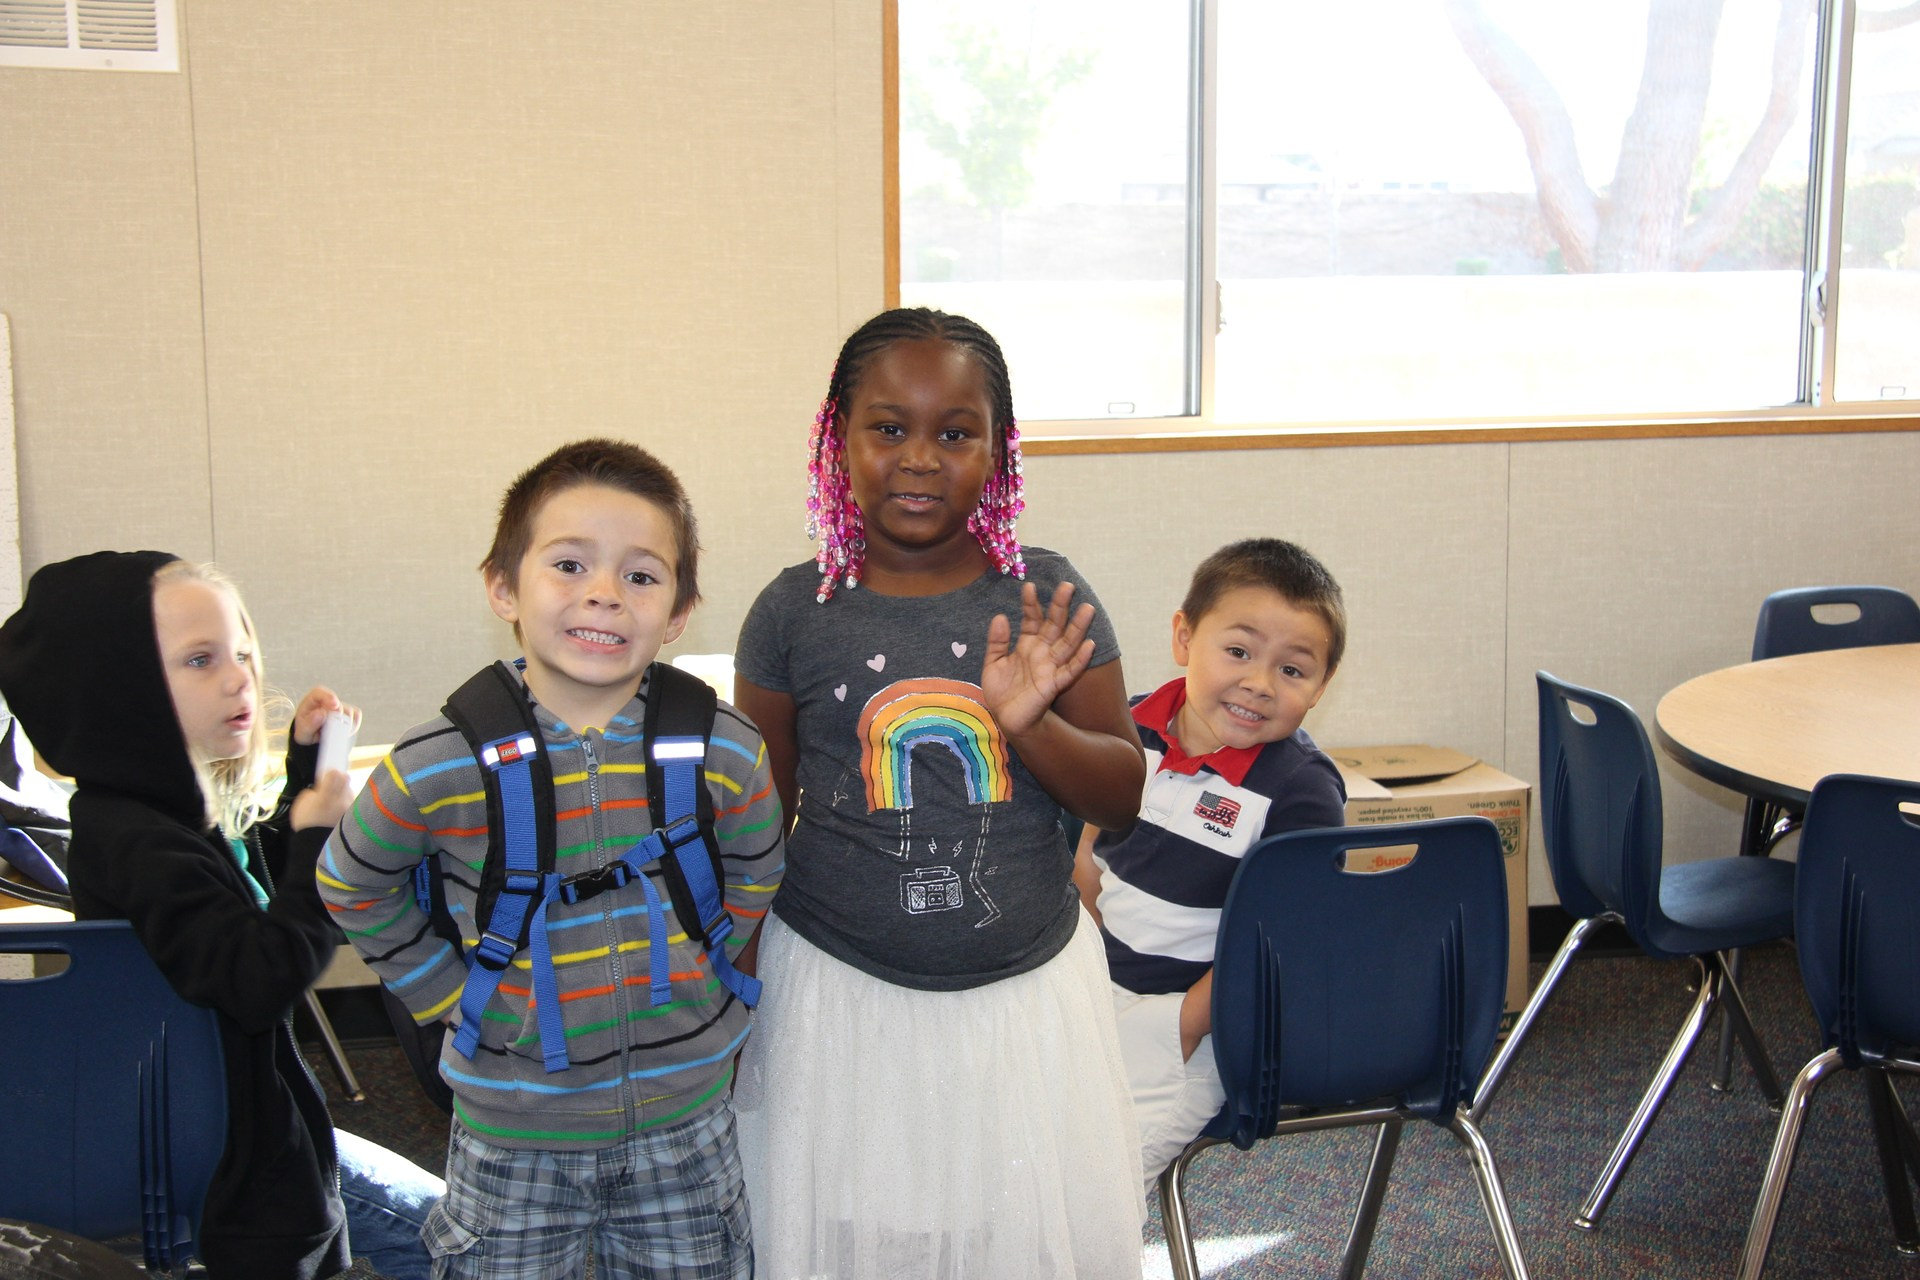 Park Hill Elementary students settle into their temporary classroom